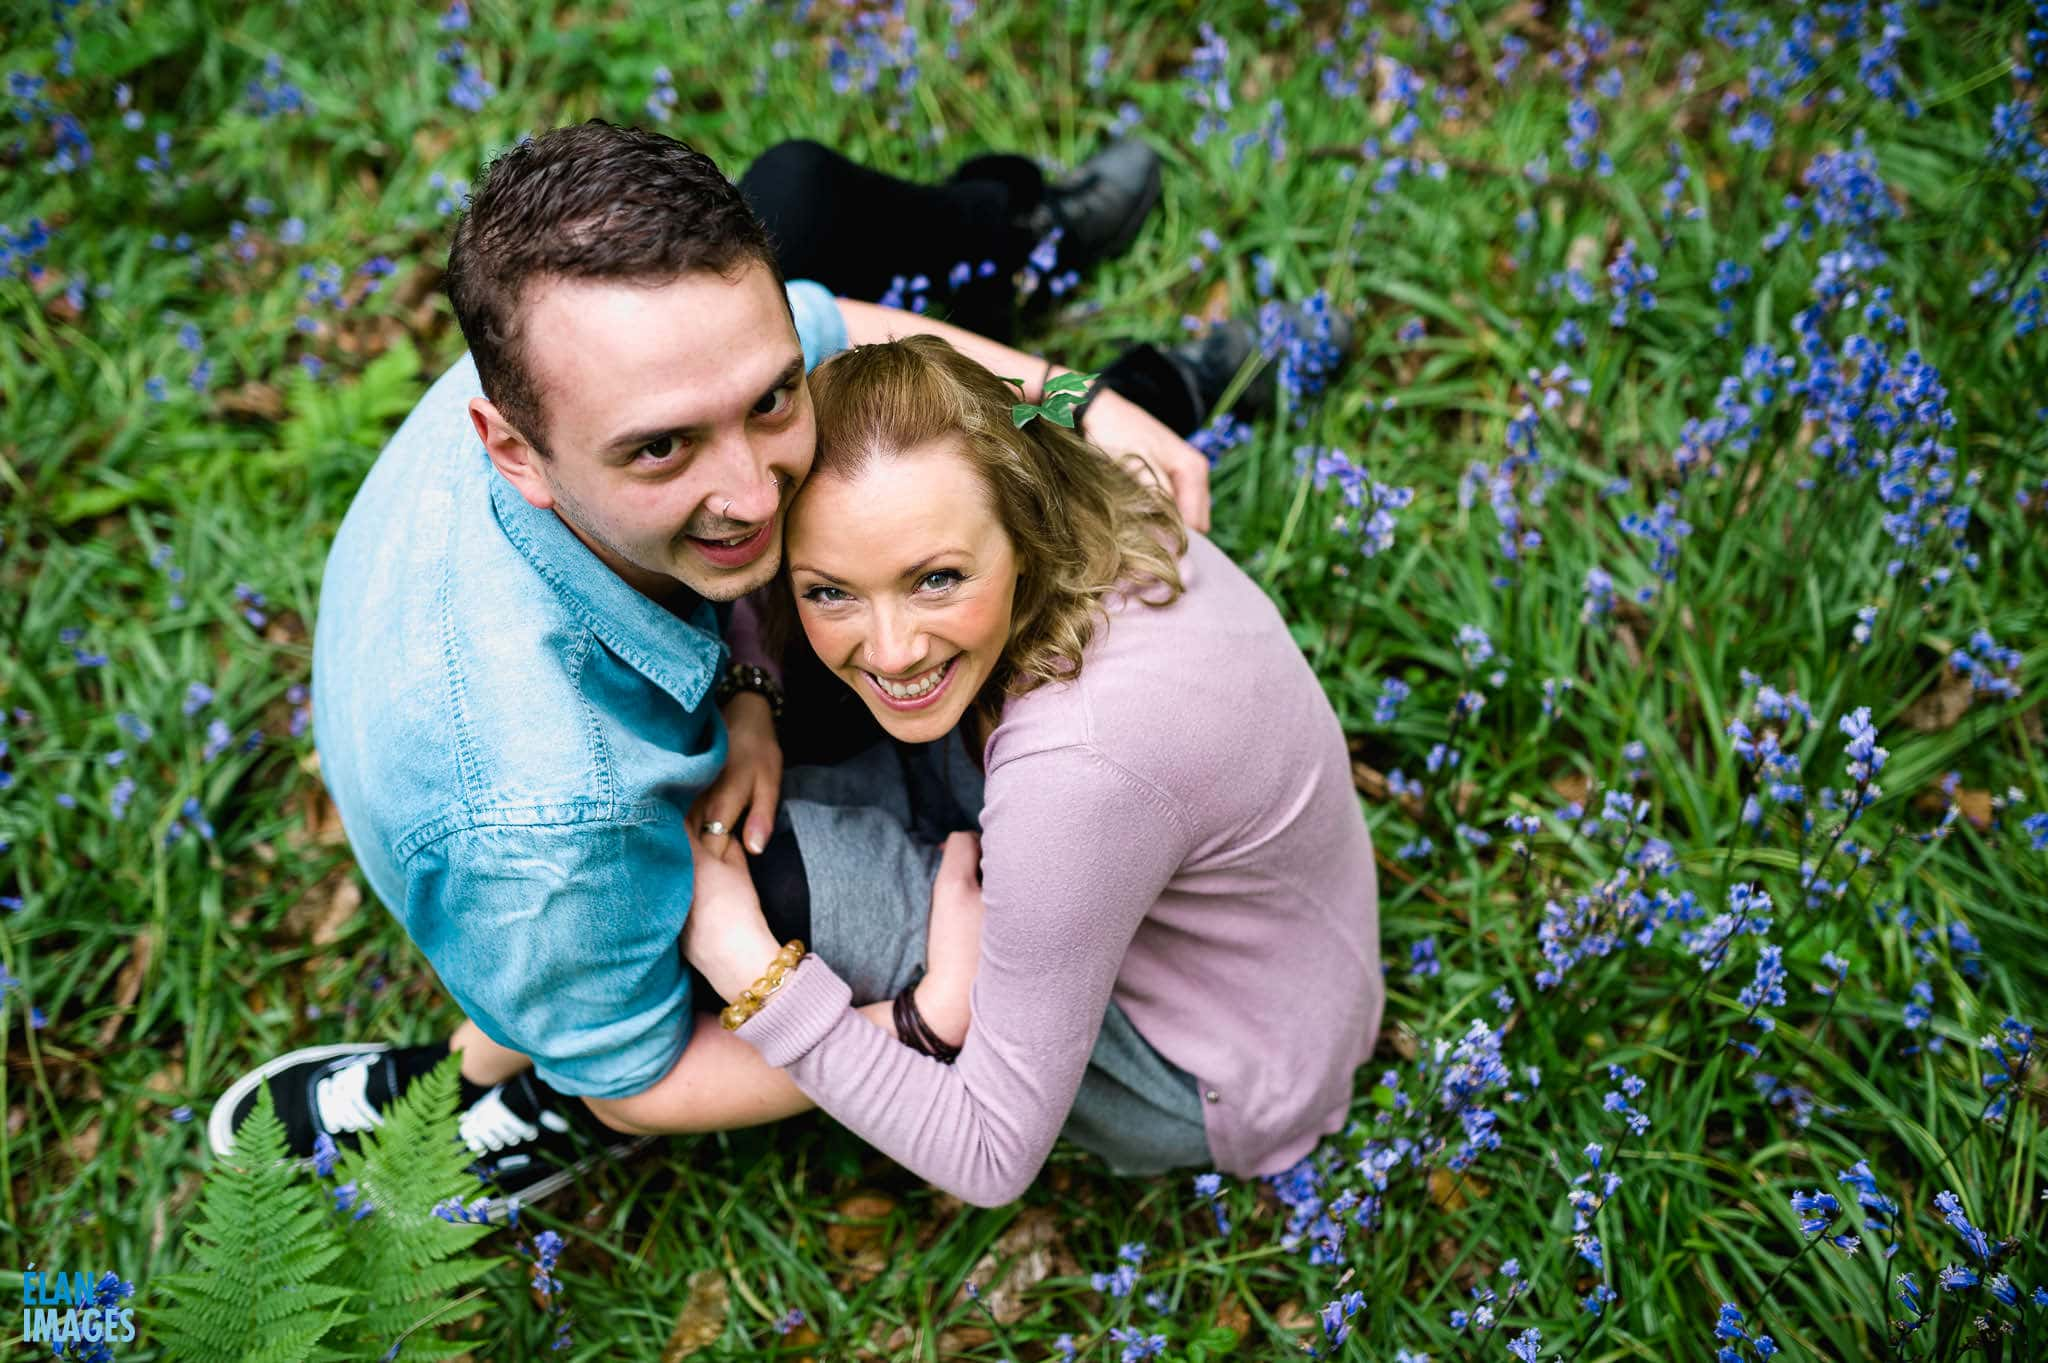 Engagement Photo Shoot in the Bluebell Woods near Bristol 23